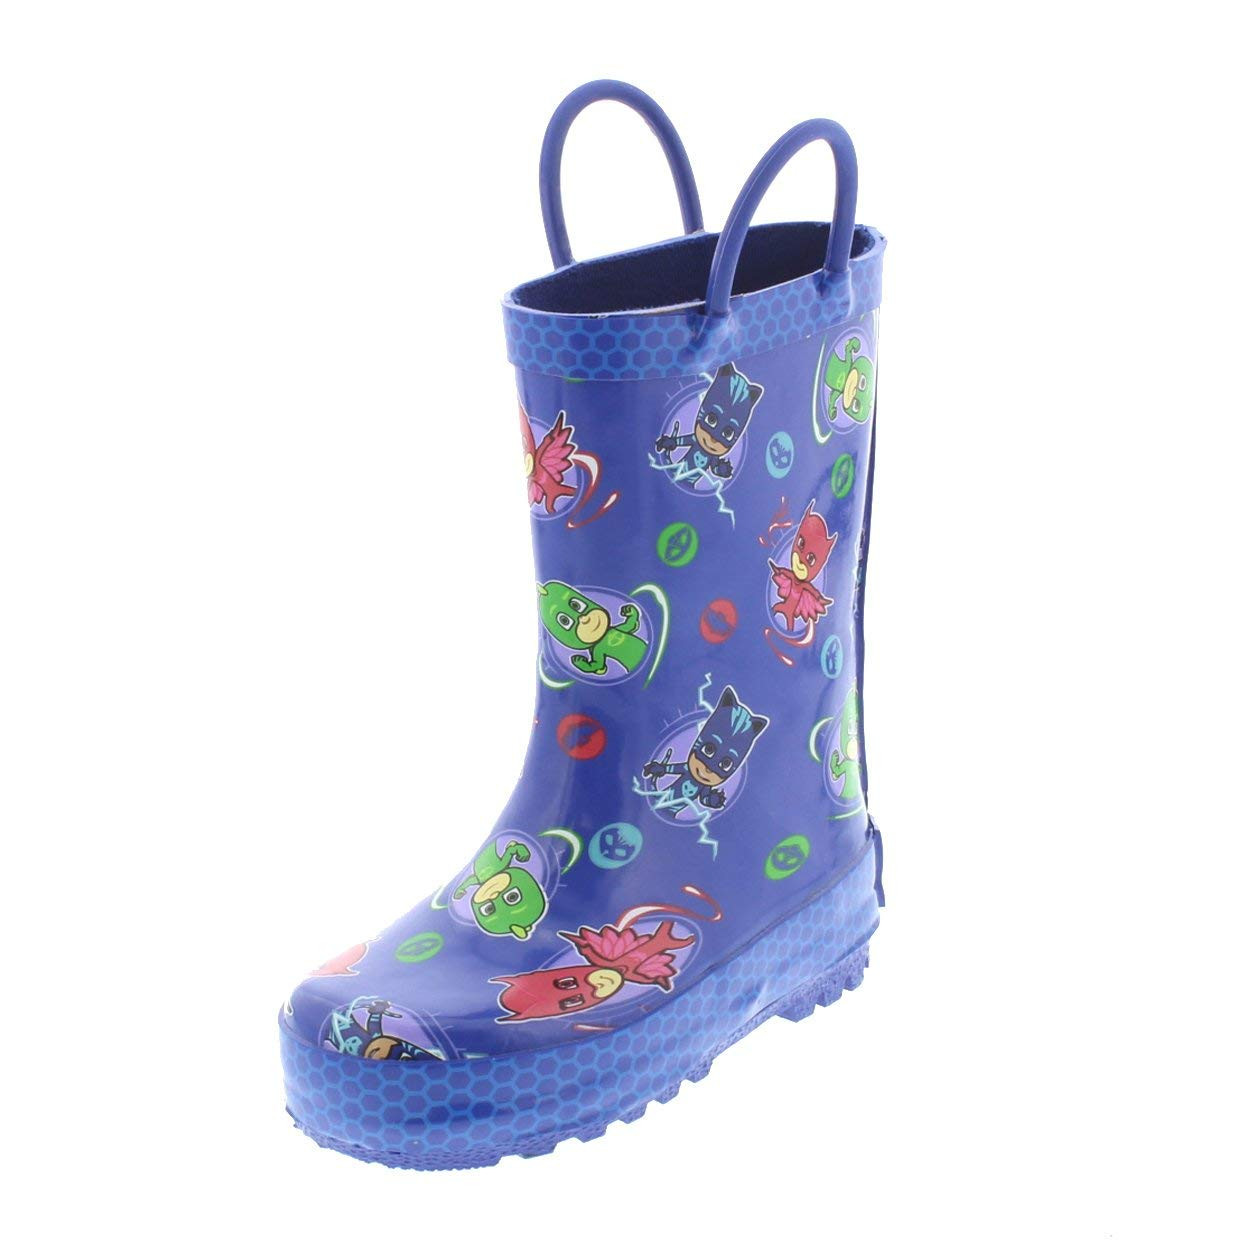 Ceramic Cowboy Boot Vase Of Amazon Com Pj Masks Boys and Girls Rain Boots toddler Little Kid Pertaining to Amazon Com Pj Masks Boys and Girls Rain Boots toddler Little Kid Boots